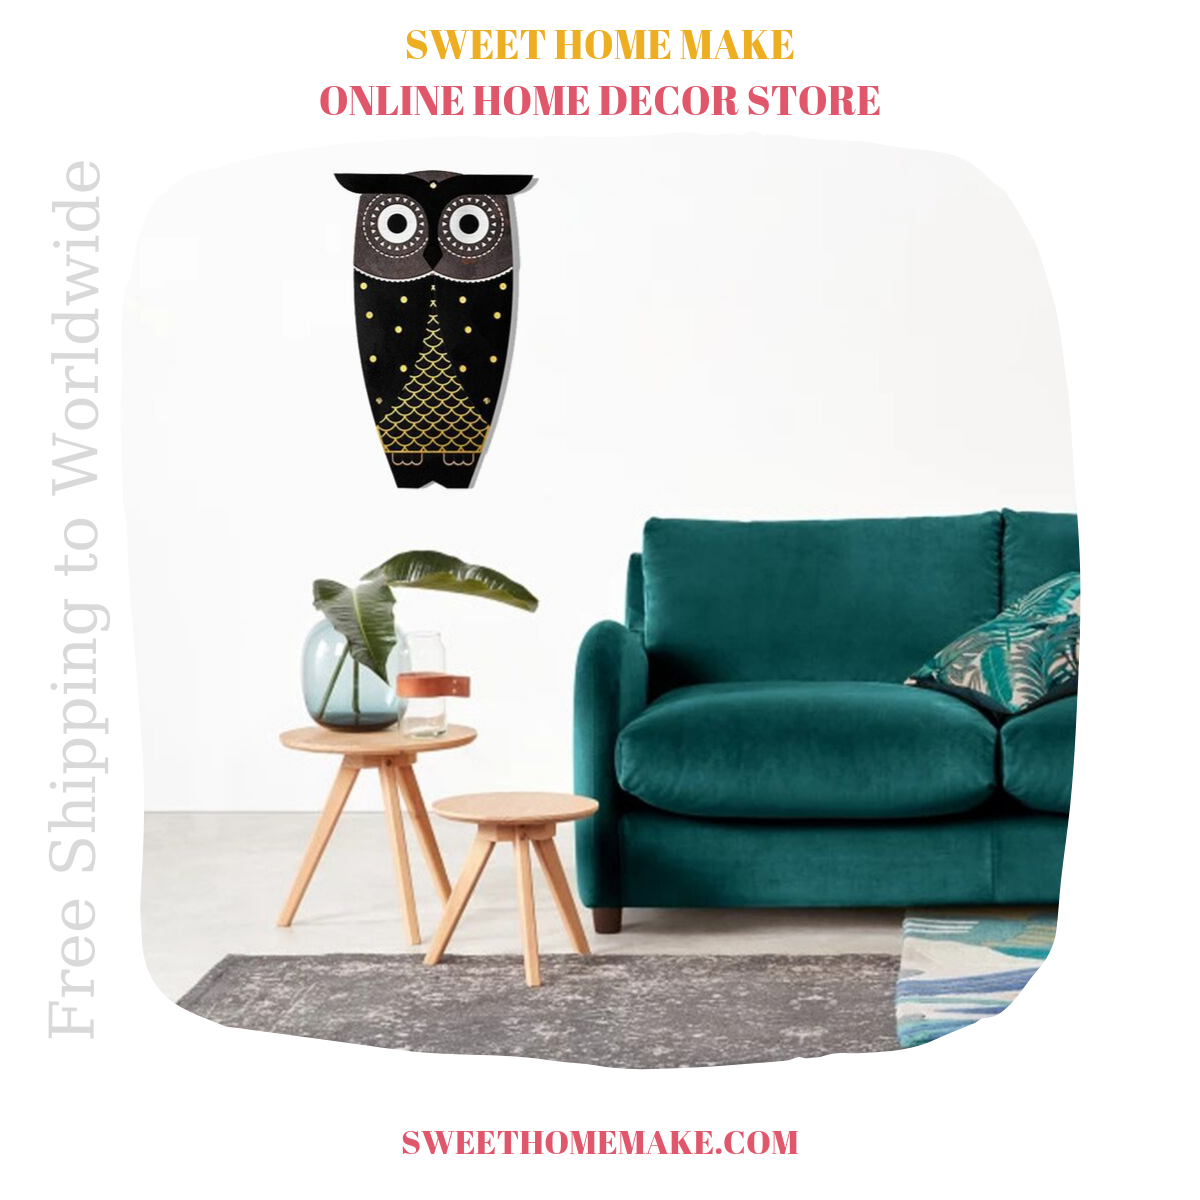 https://sweethomemake.com/products/owl-home-decor-and-wall-decor-with-wood-owl